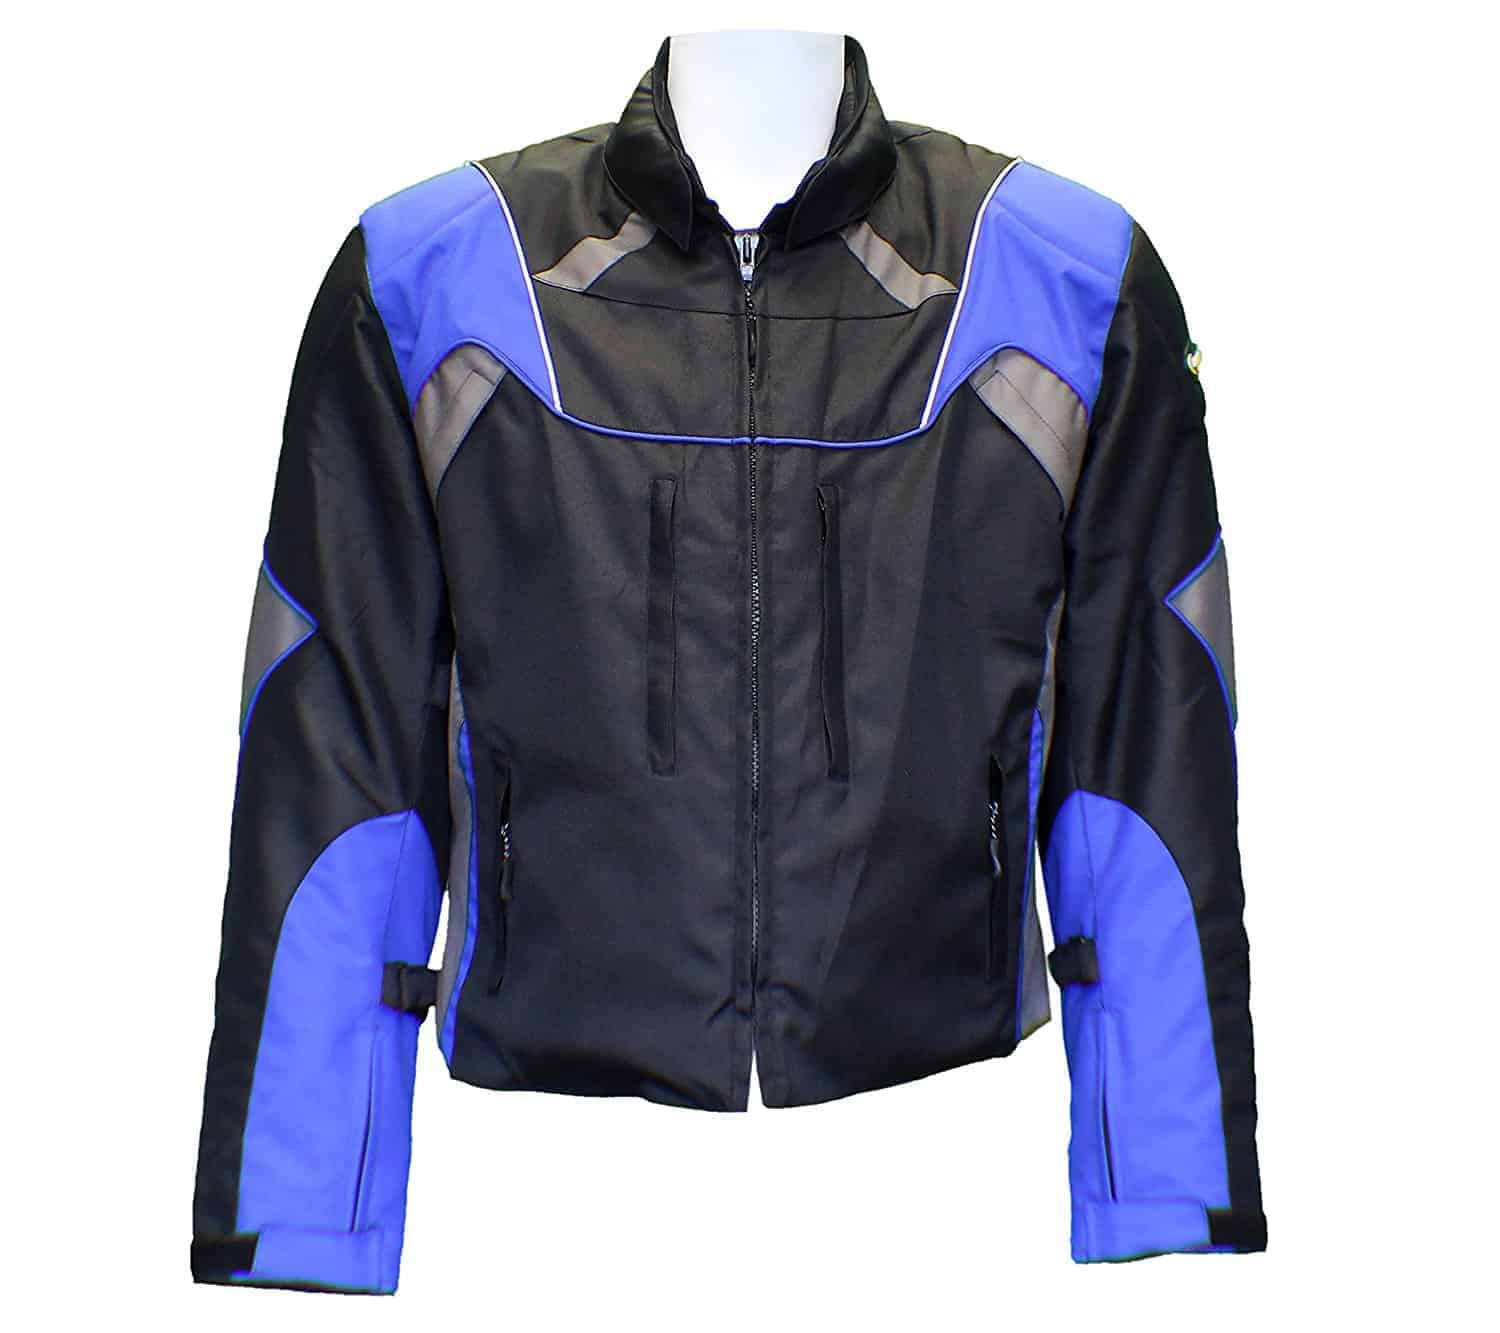 MotoAir R-600 Motorcycle Airbag Jacket